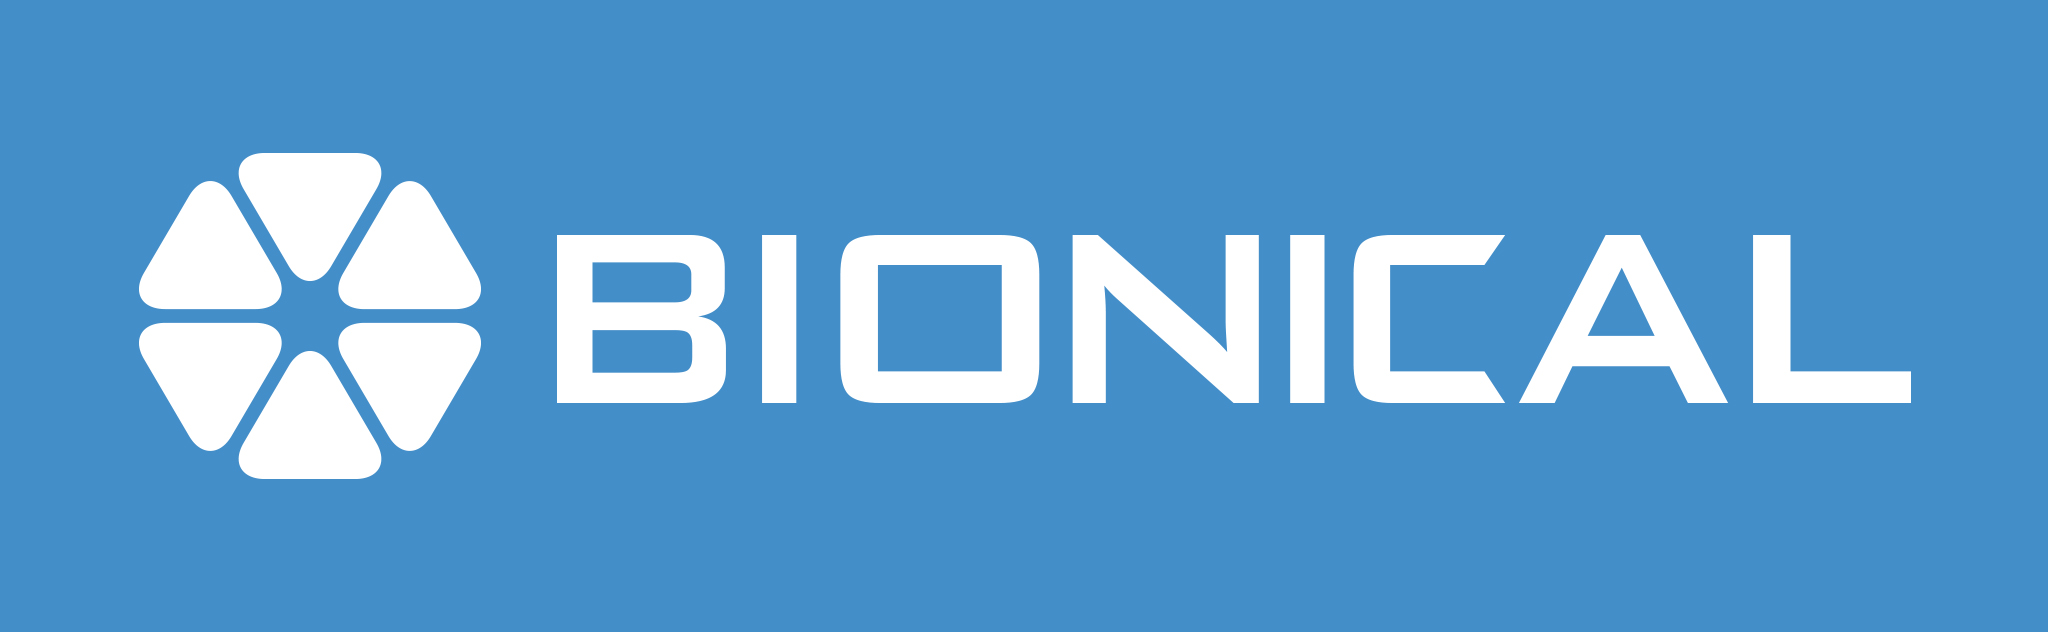 Logo in white text on blue background reads the company name Bionical